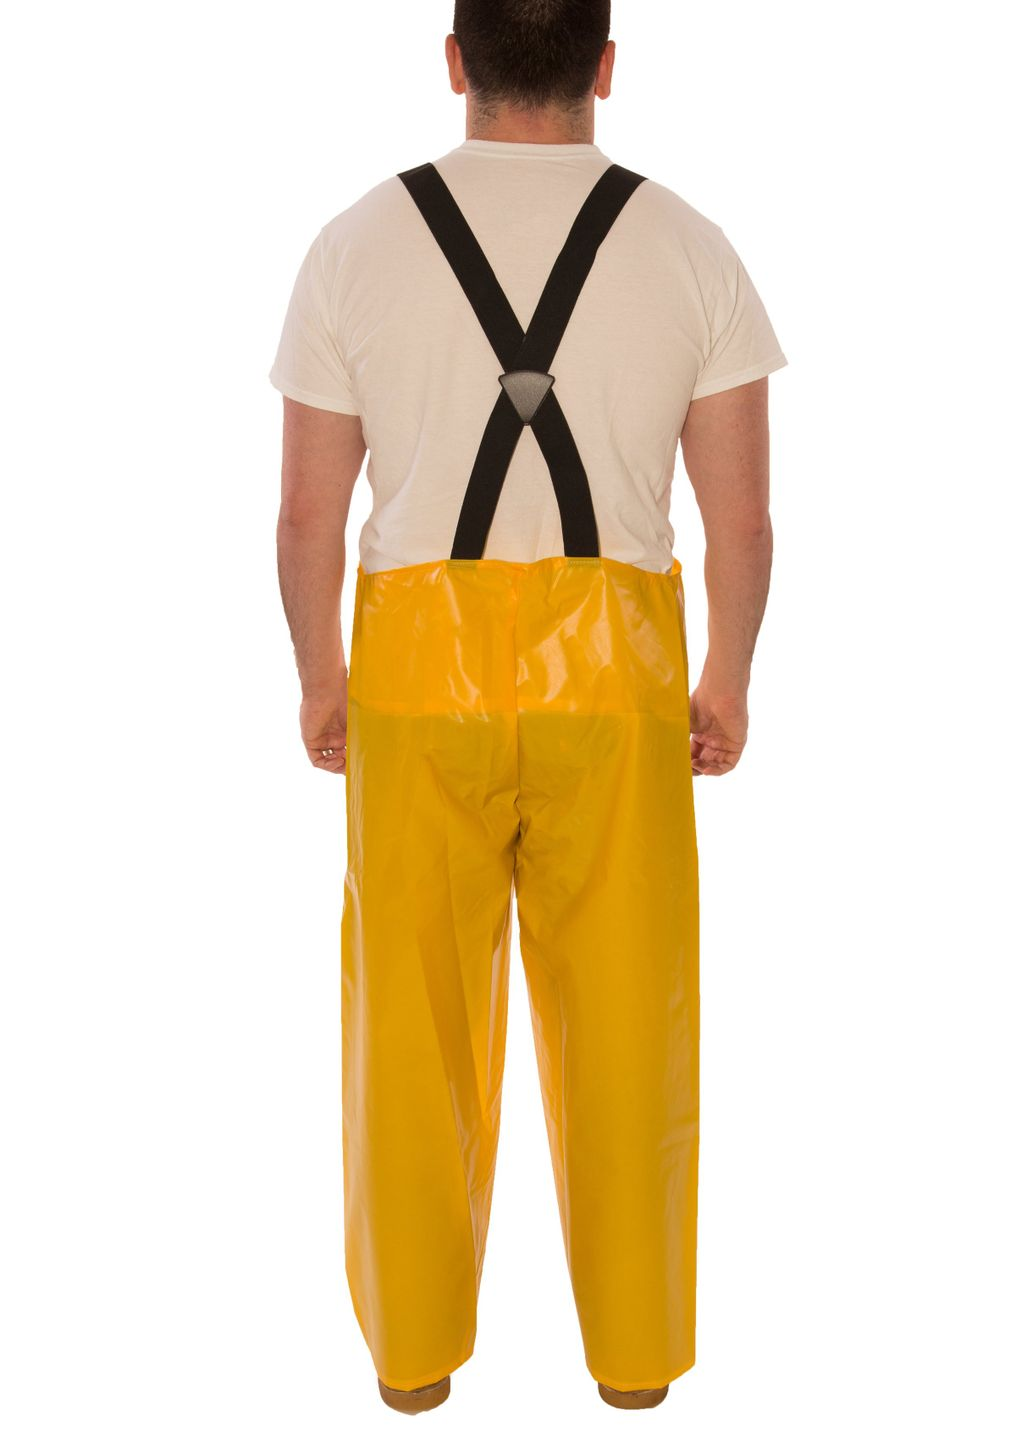 tingley-iron-eagle-chemical-resistant-overalls-polyurethane-coated-yellow-back.jpg